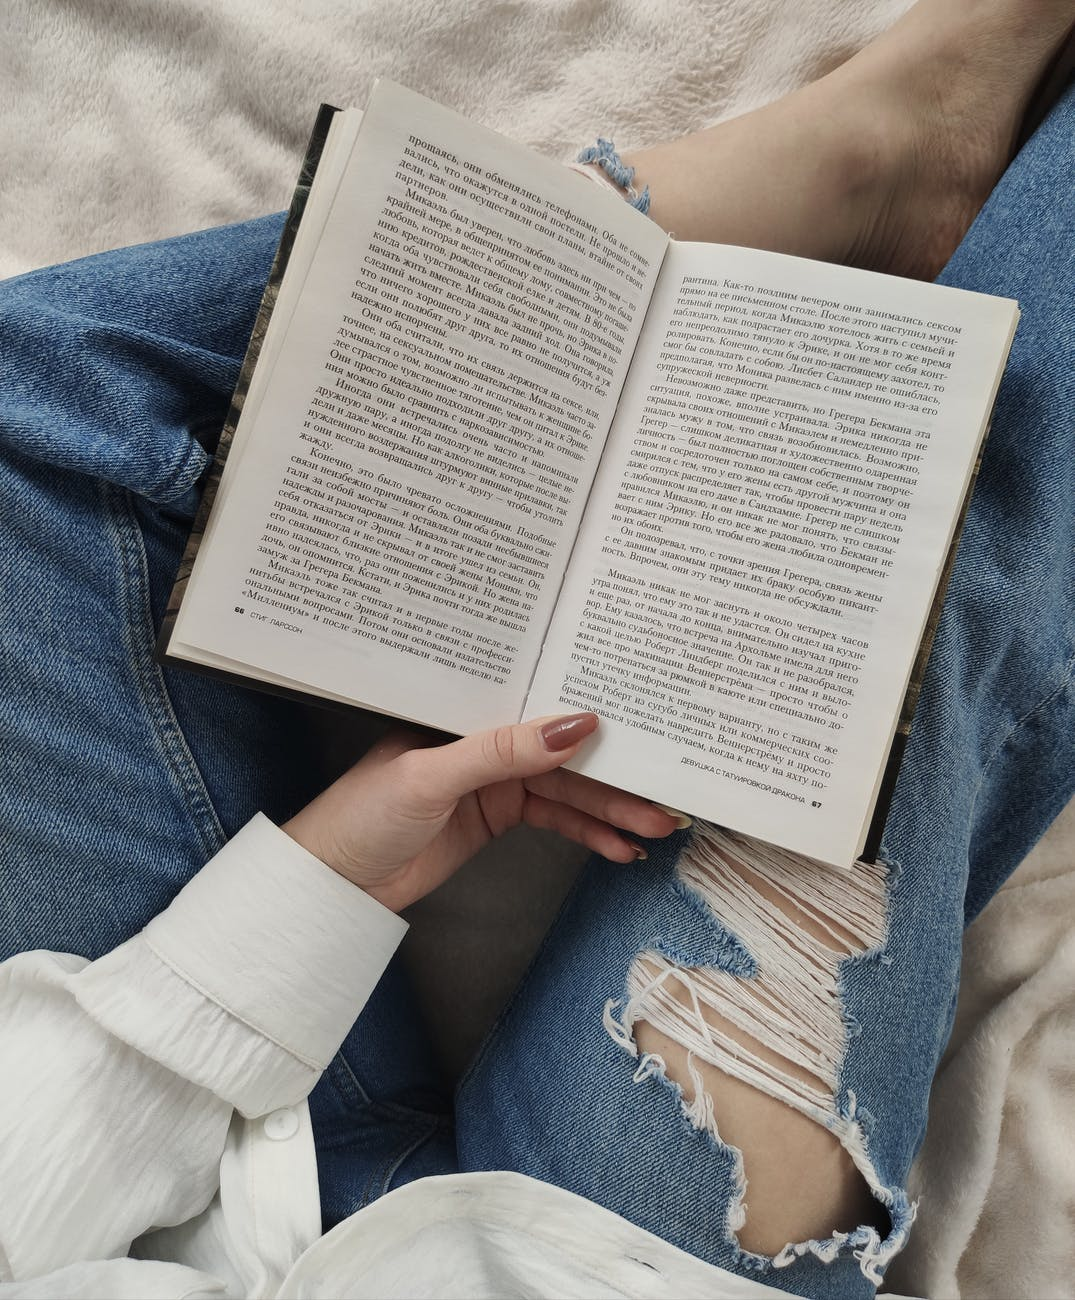 crop faceless woman reading book on bed